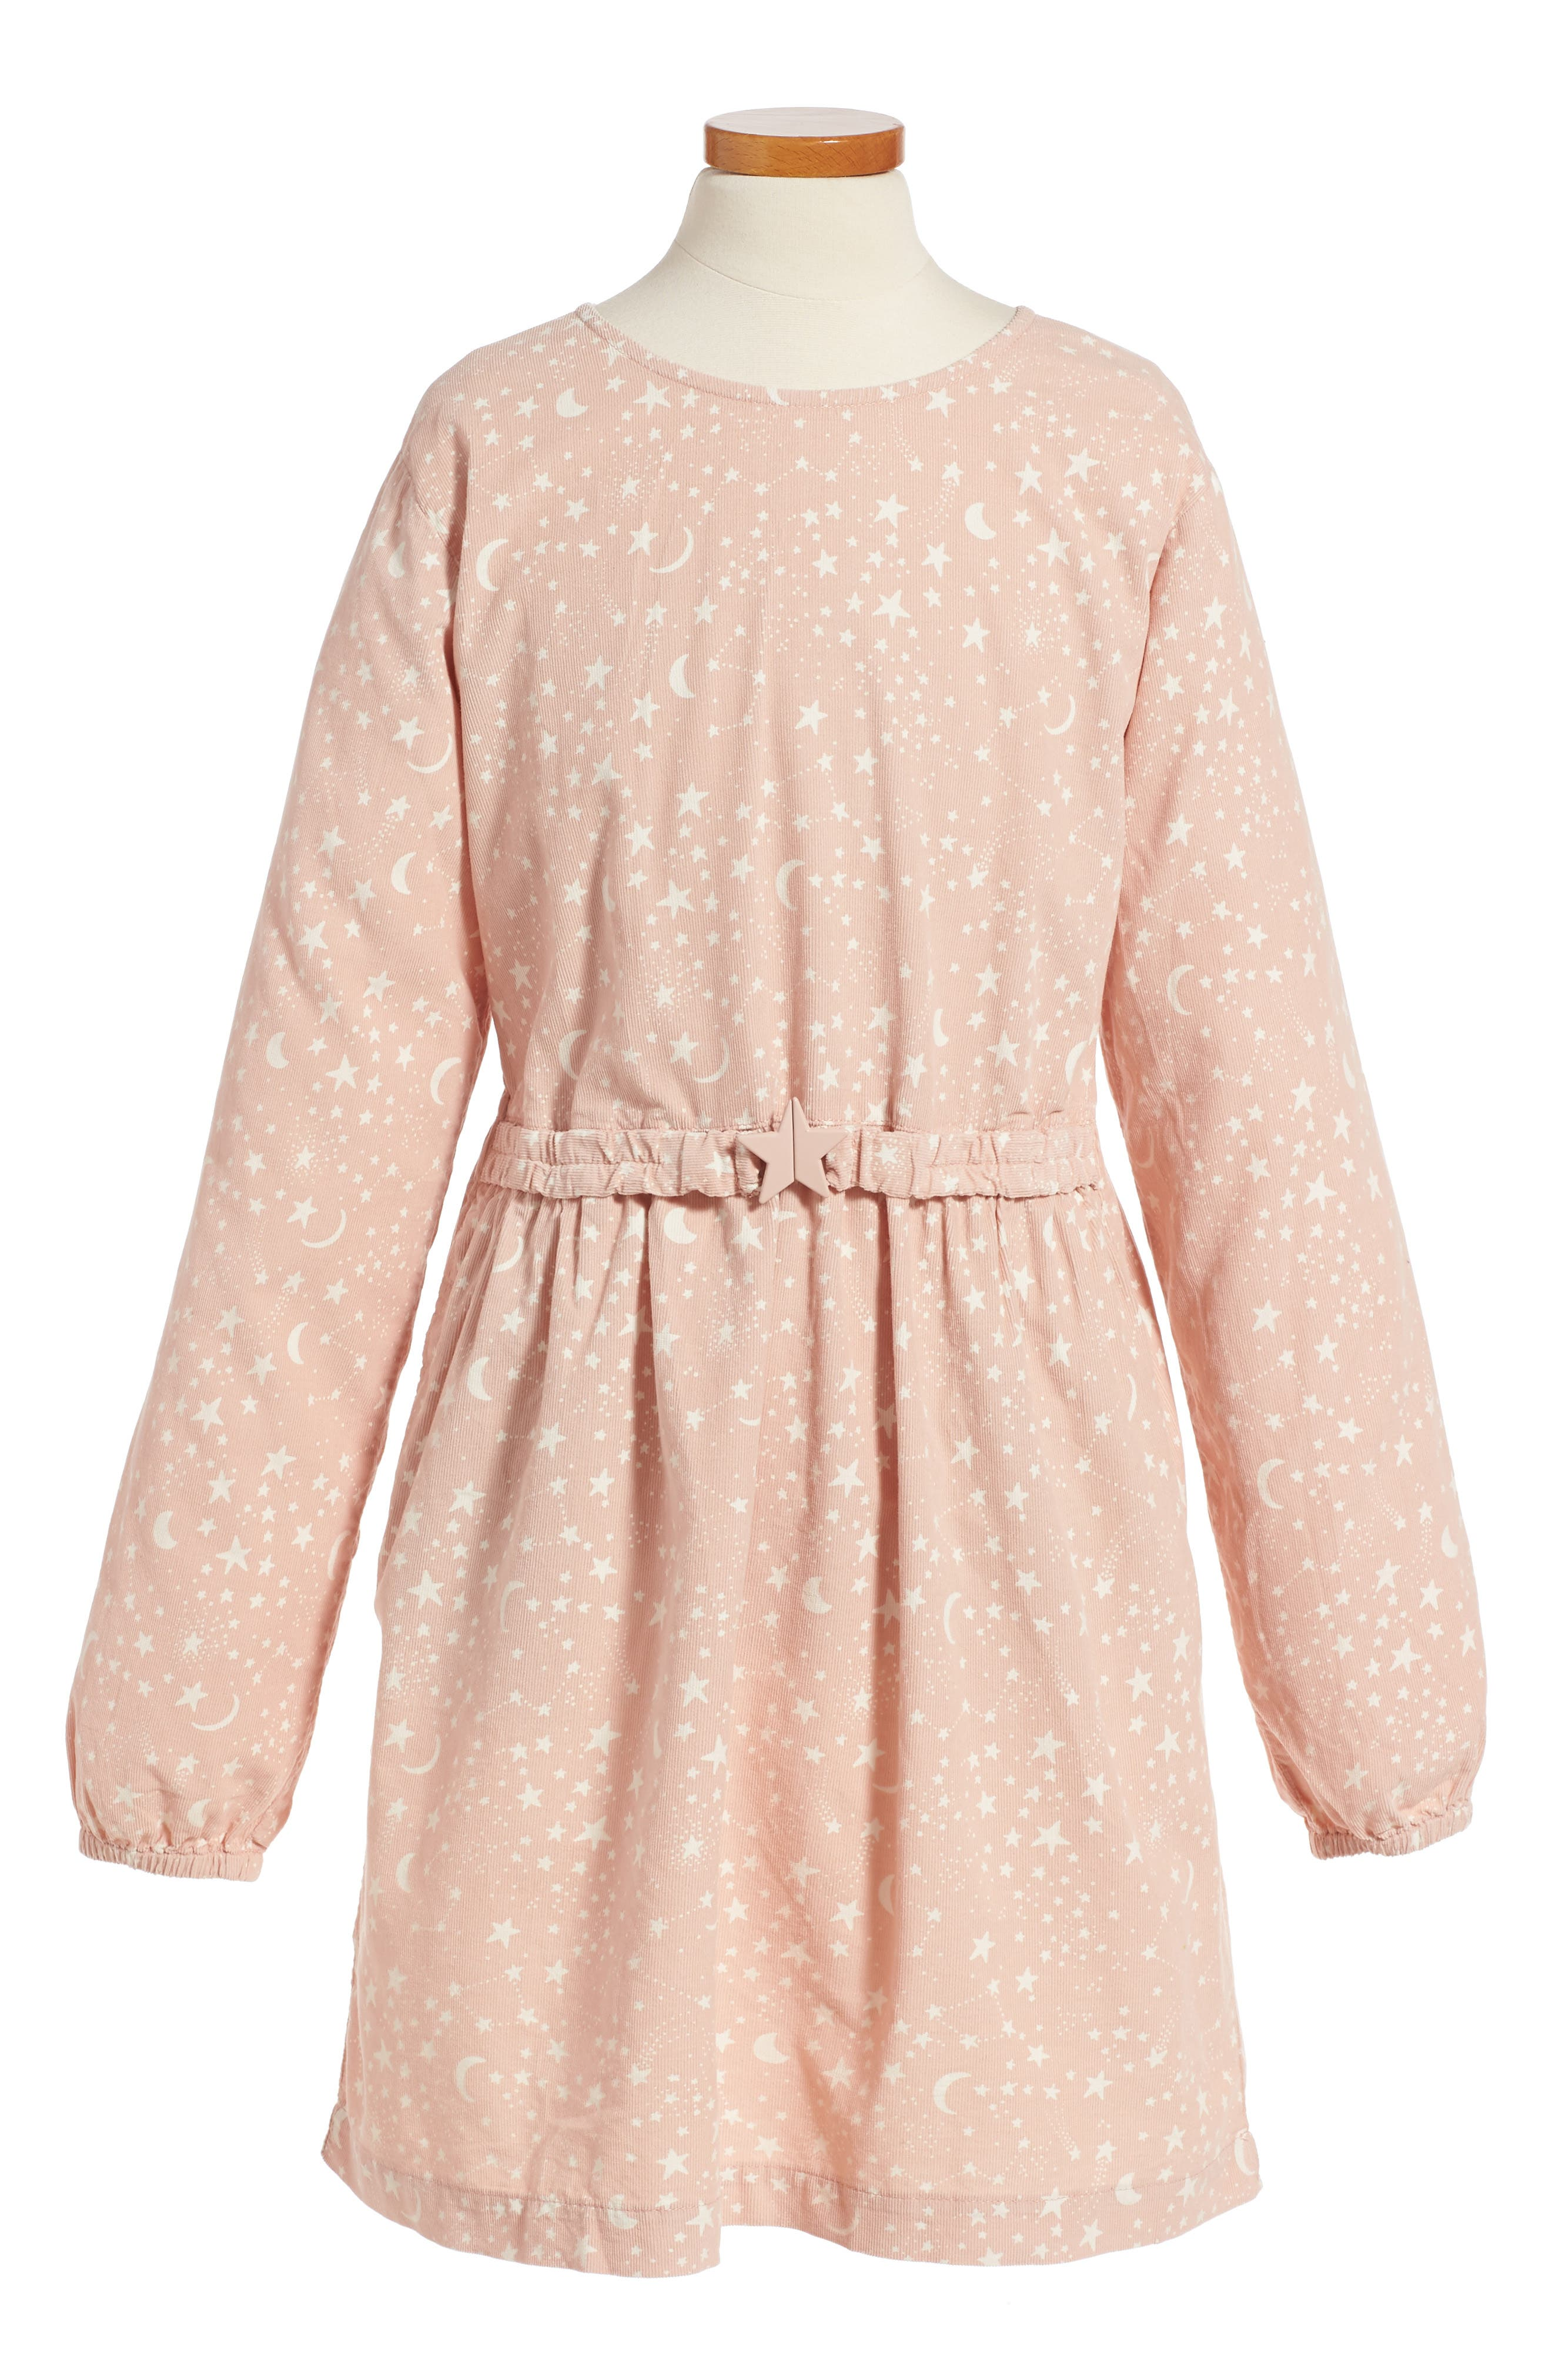 Main Image - Stella McCartney Kids Skippy Star Print Dress (Big Girls)